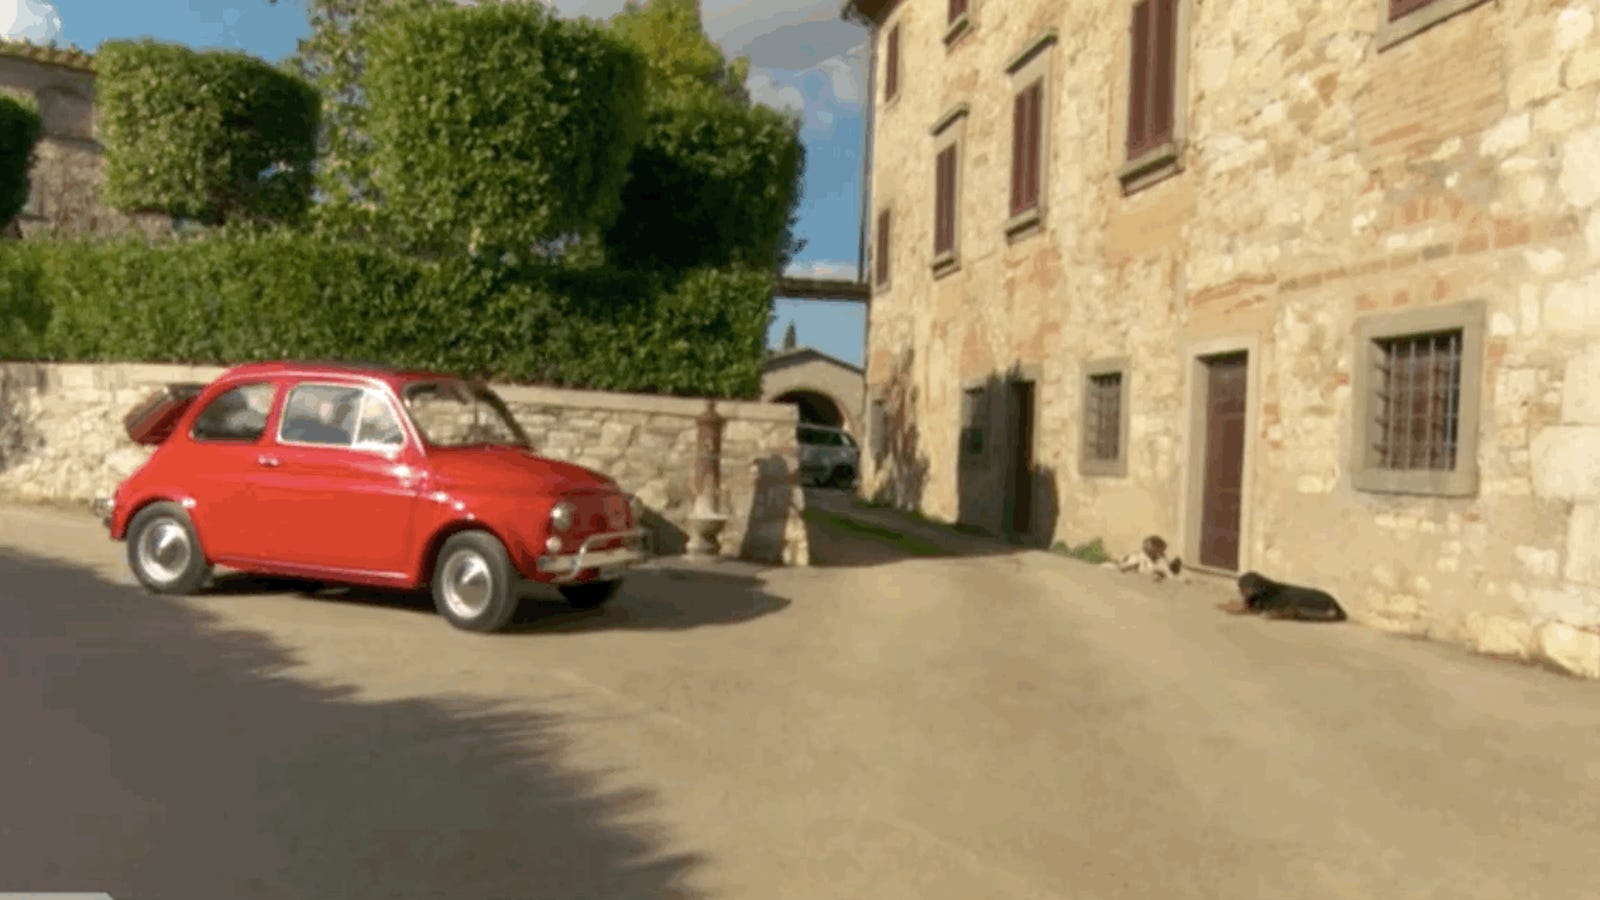 Conan O Brien Somehow Crammed His 6 4 Frame Into A 1962 Fiat 500